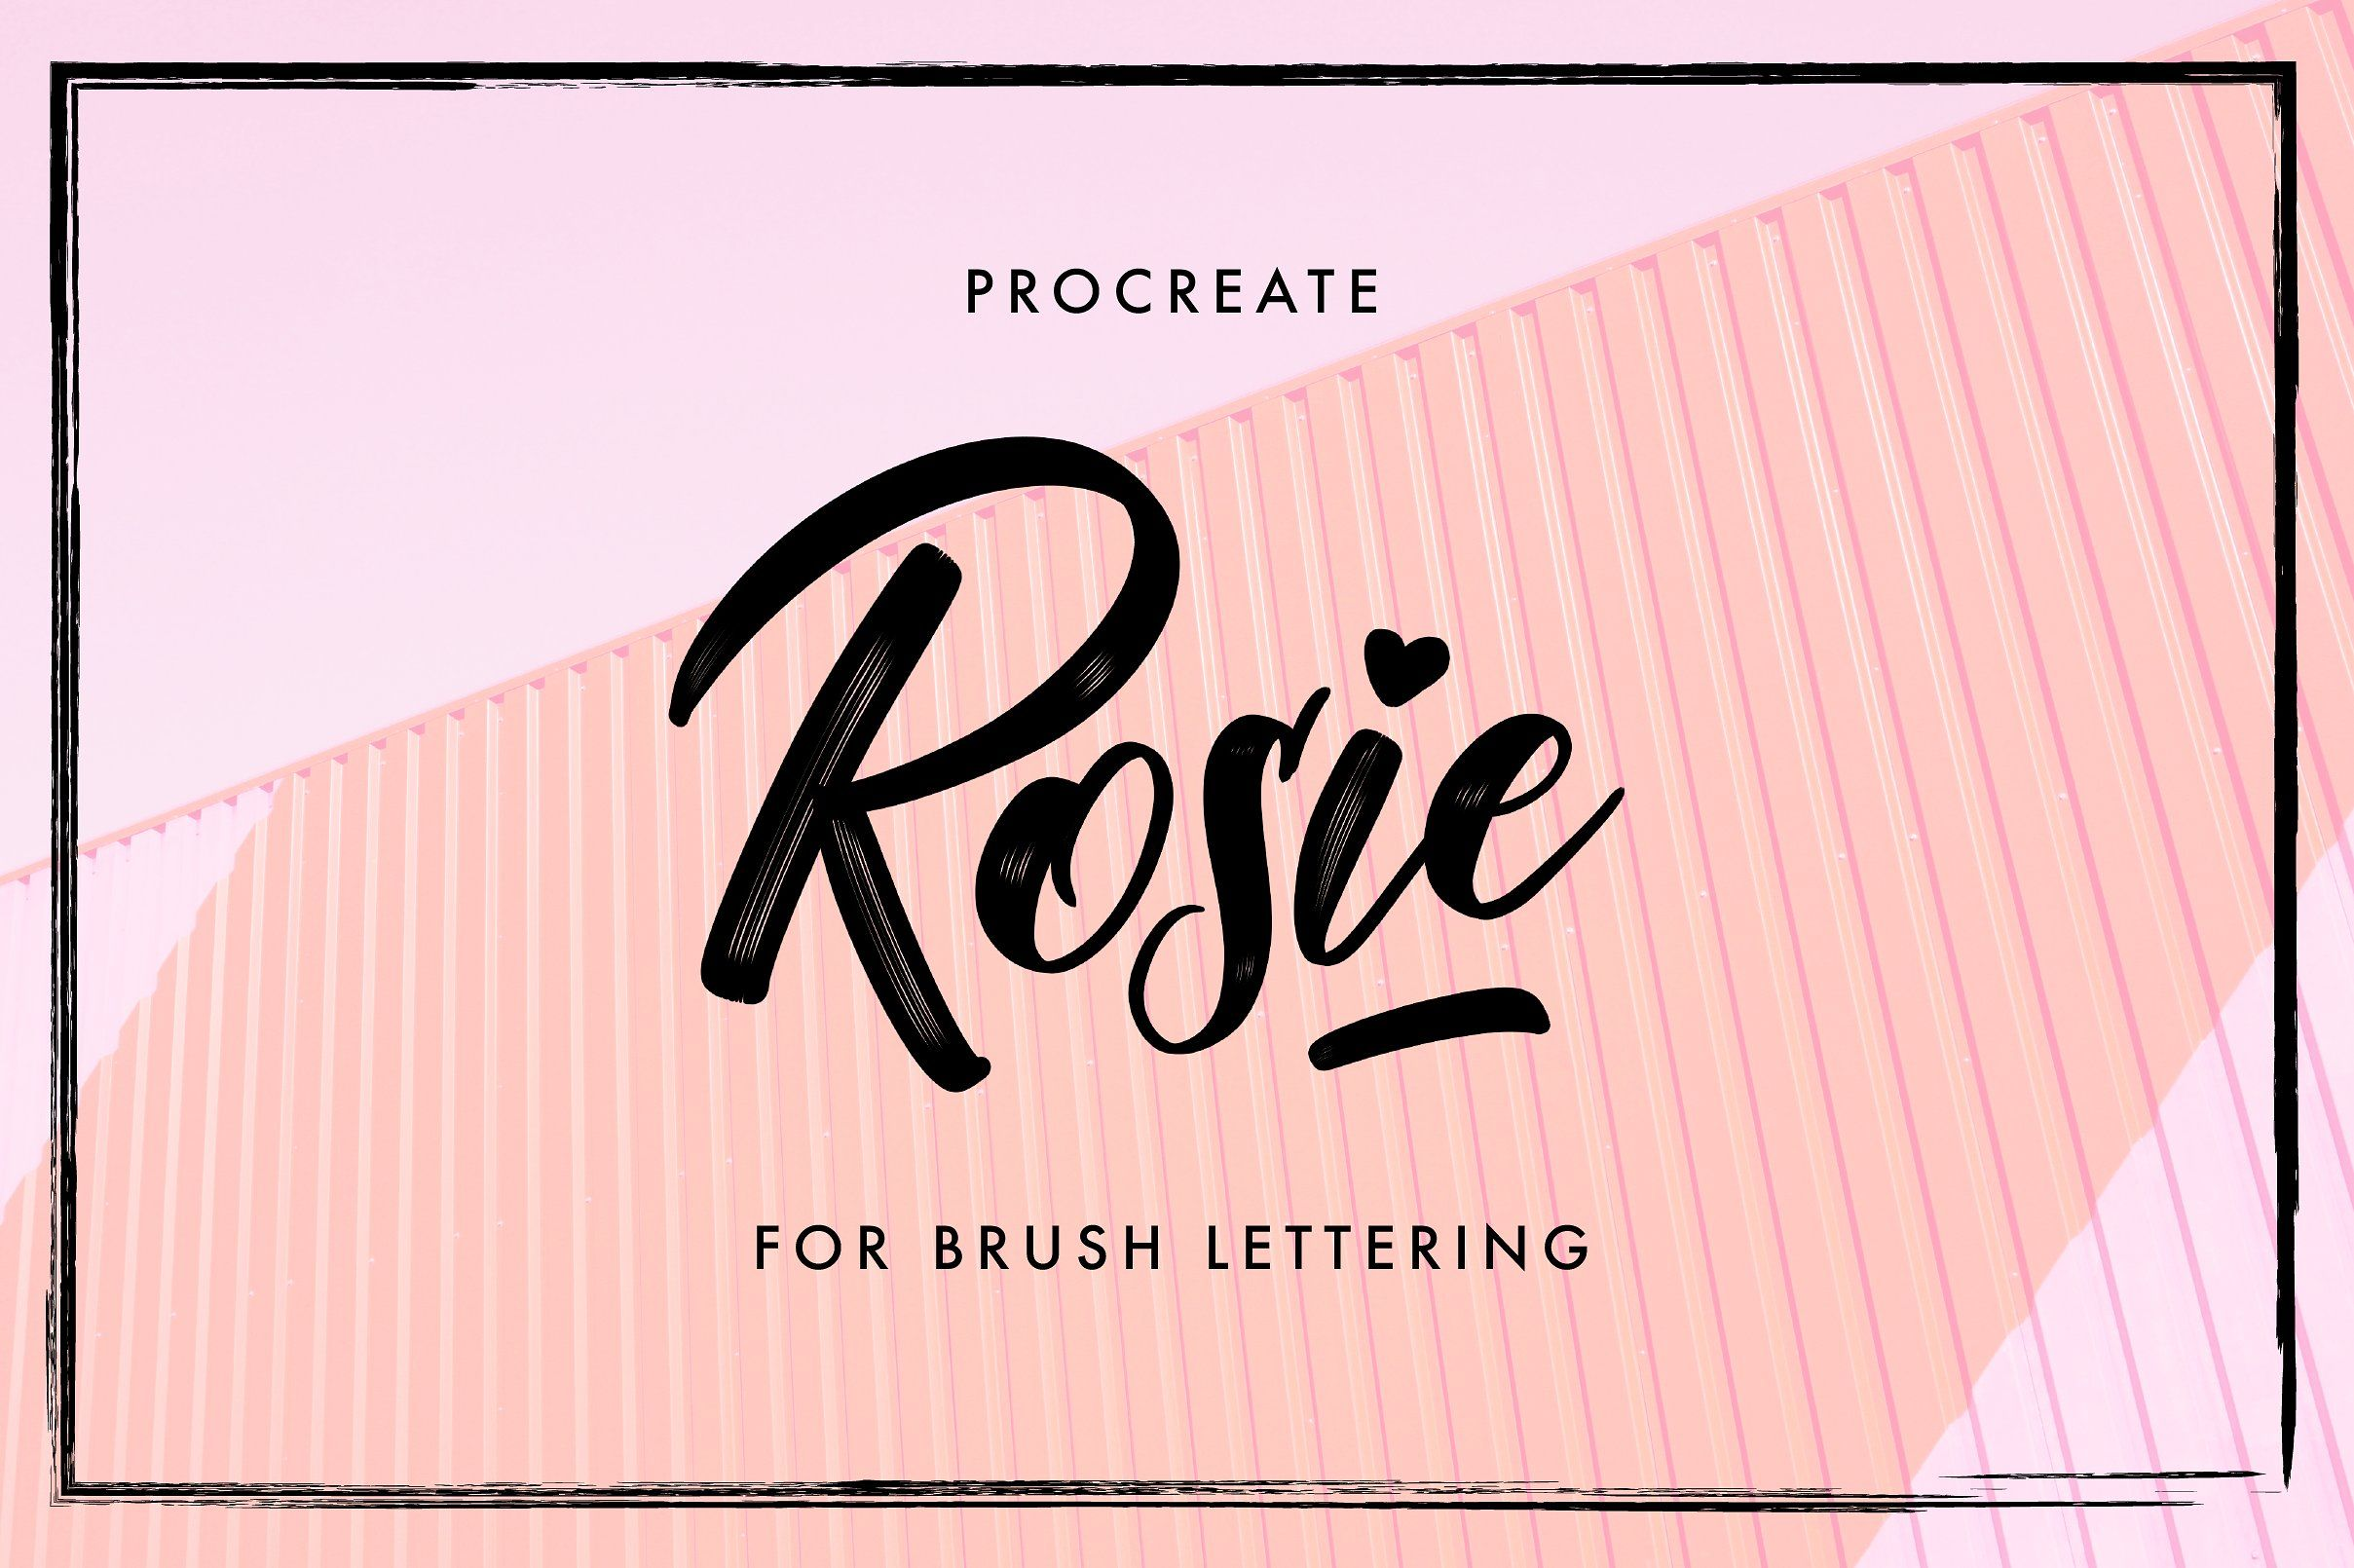 Download Rosie - Procreate Lettering Brush | Lettering, Procreate ...